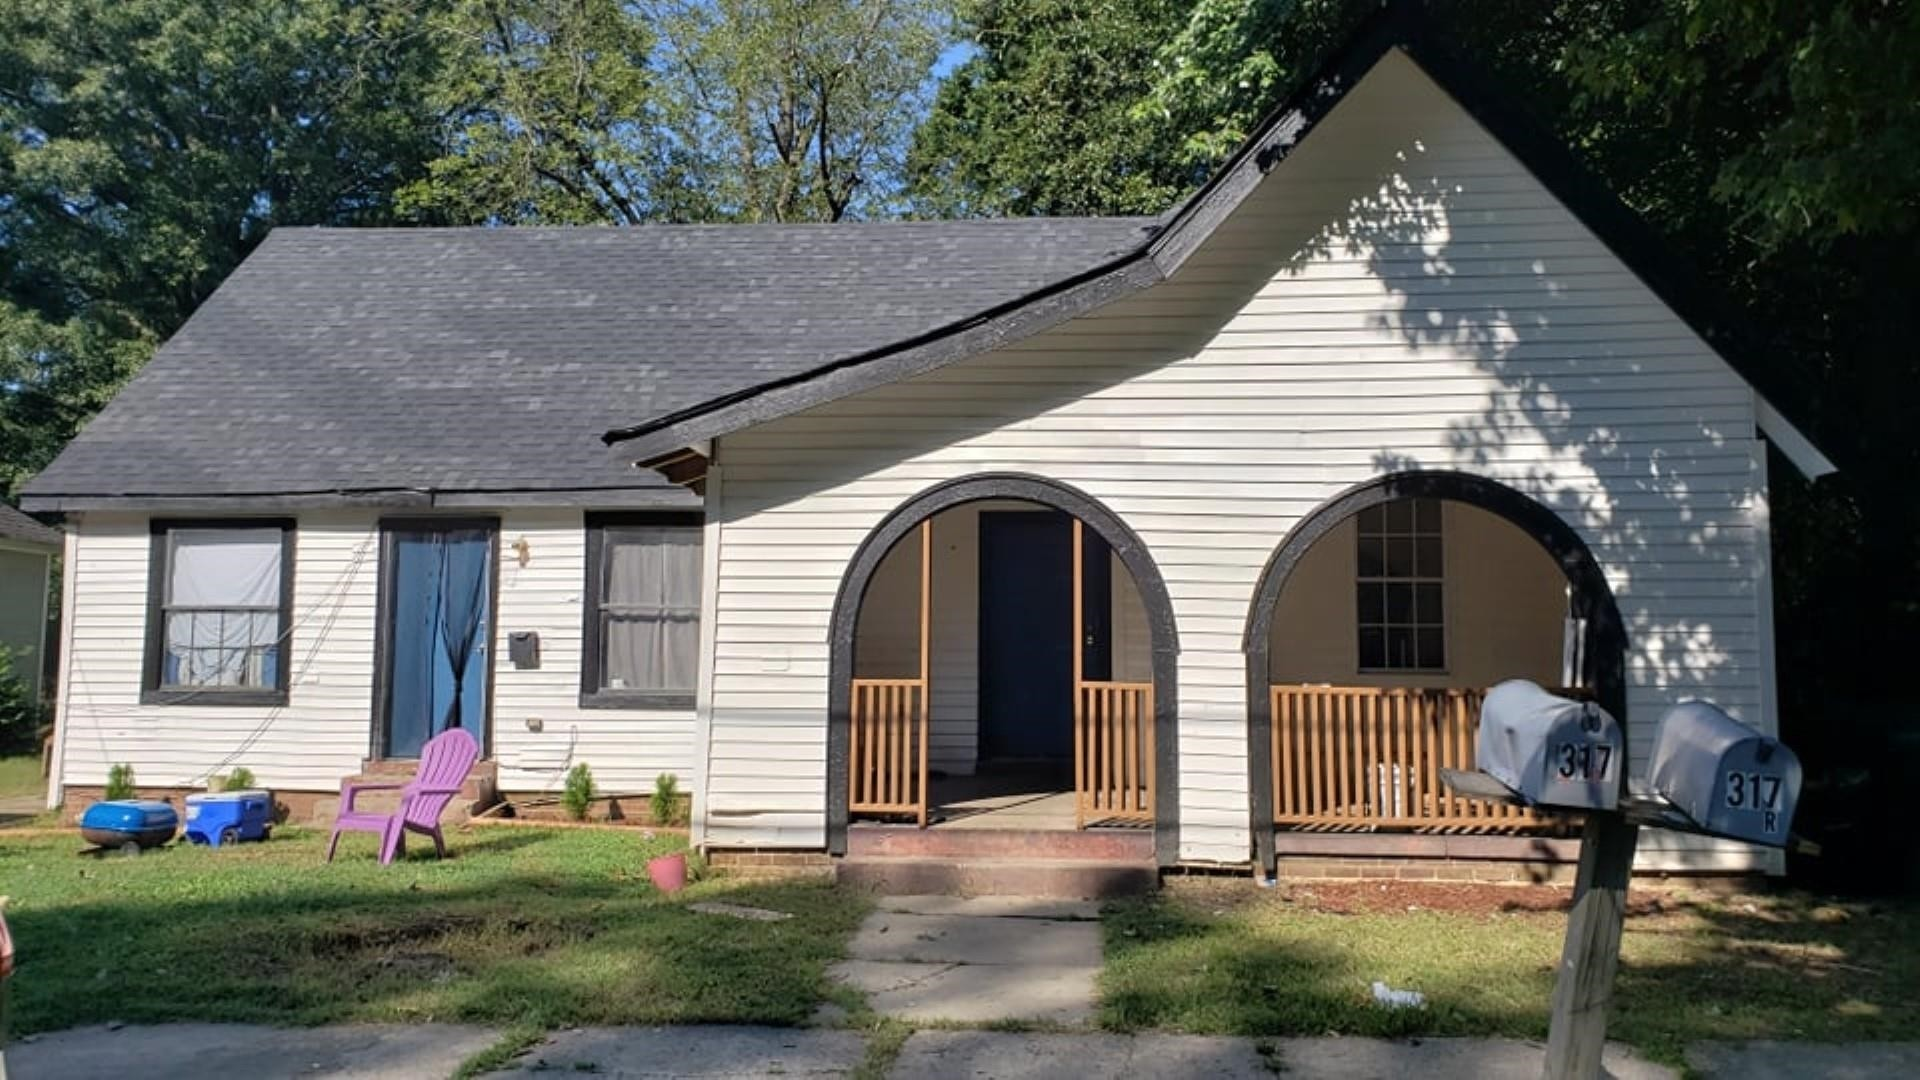 Multi-Family Home In Downtown Jackson